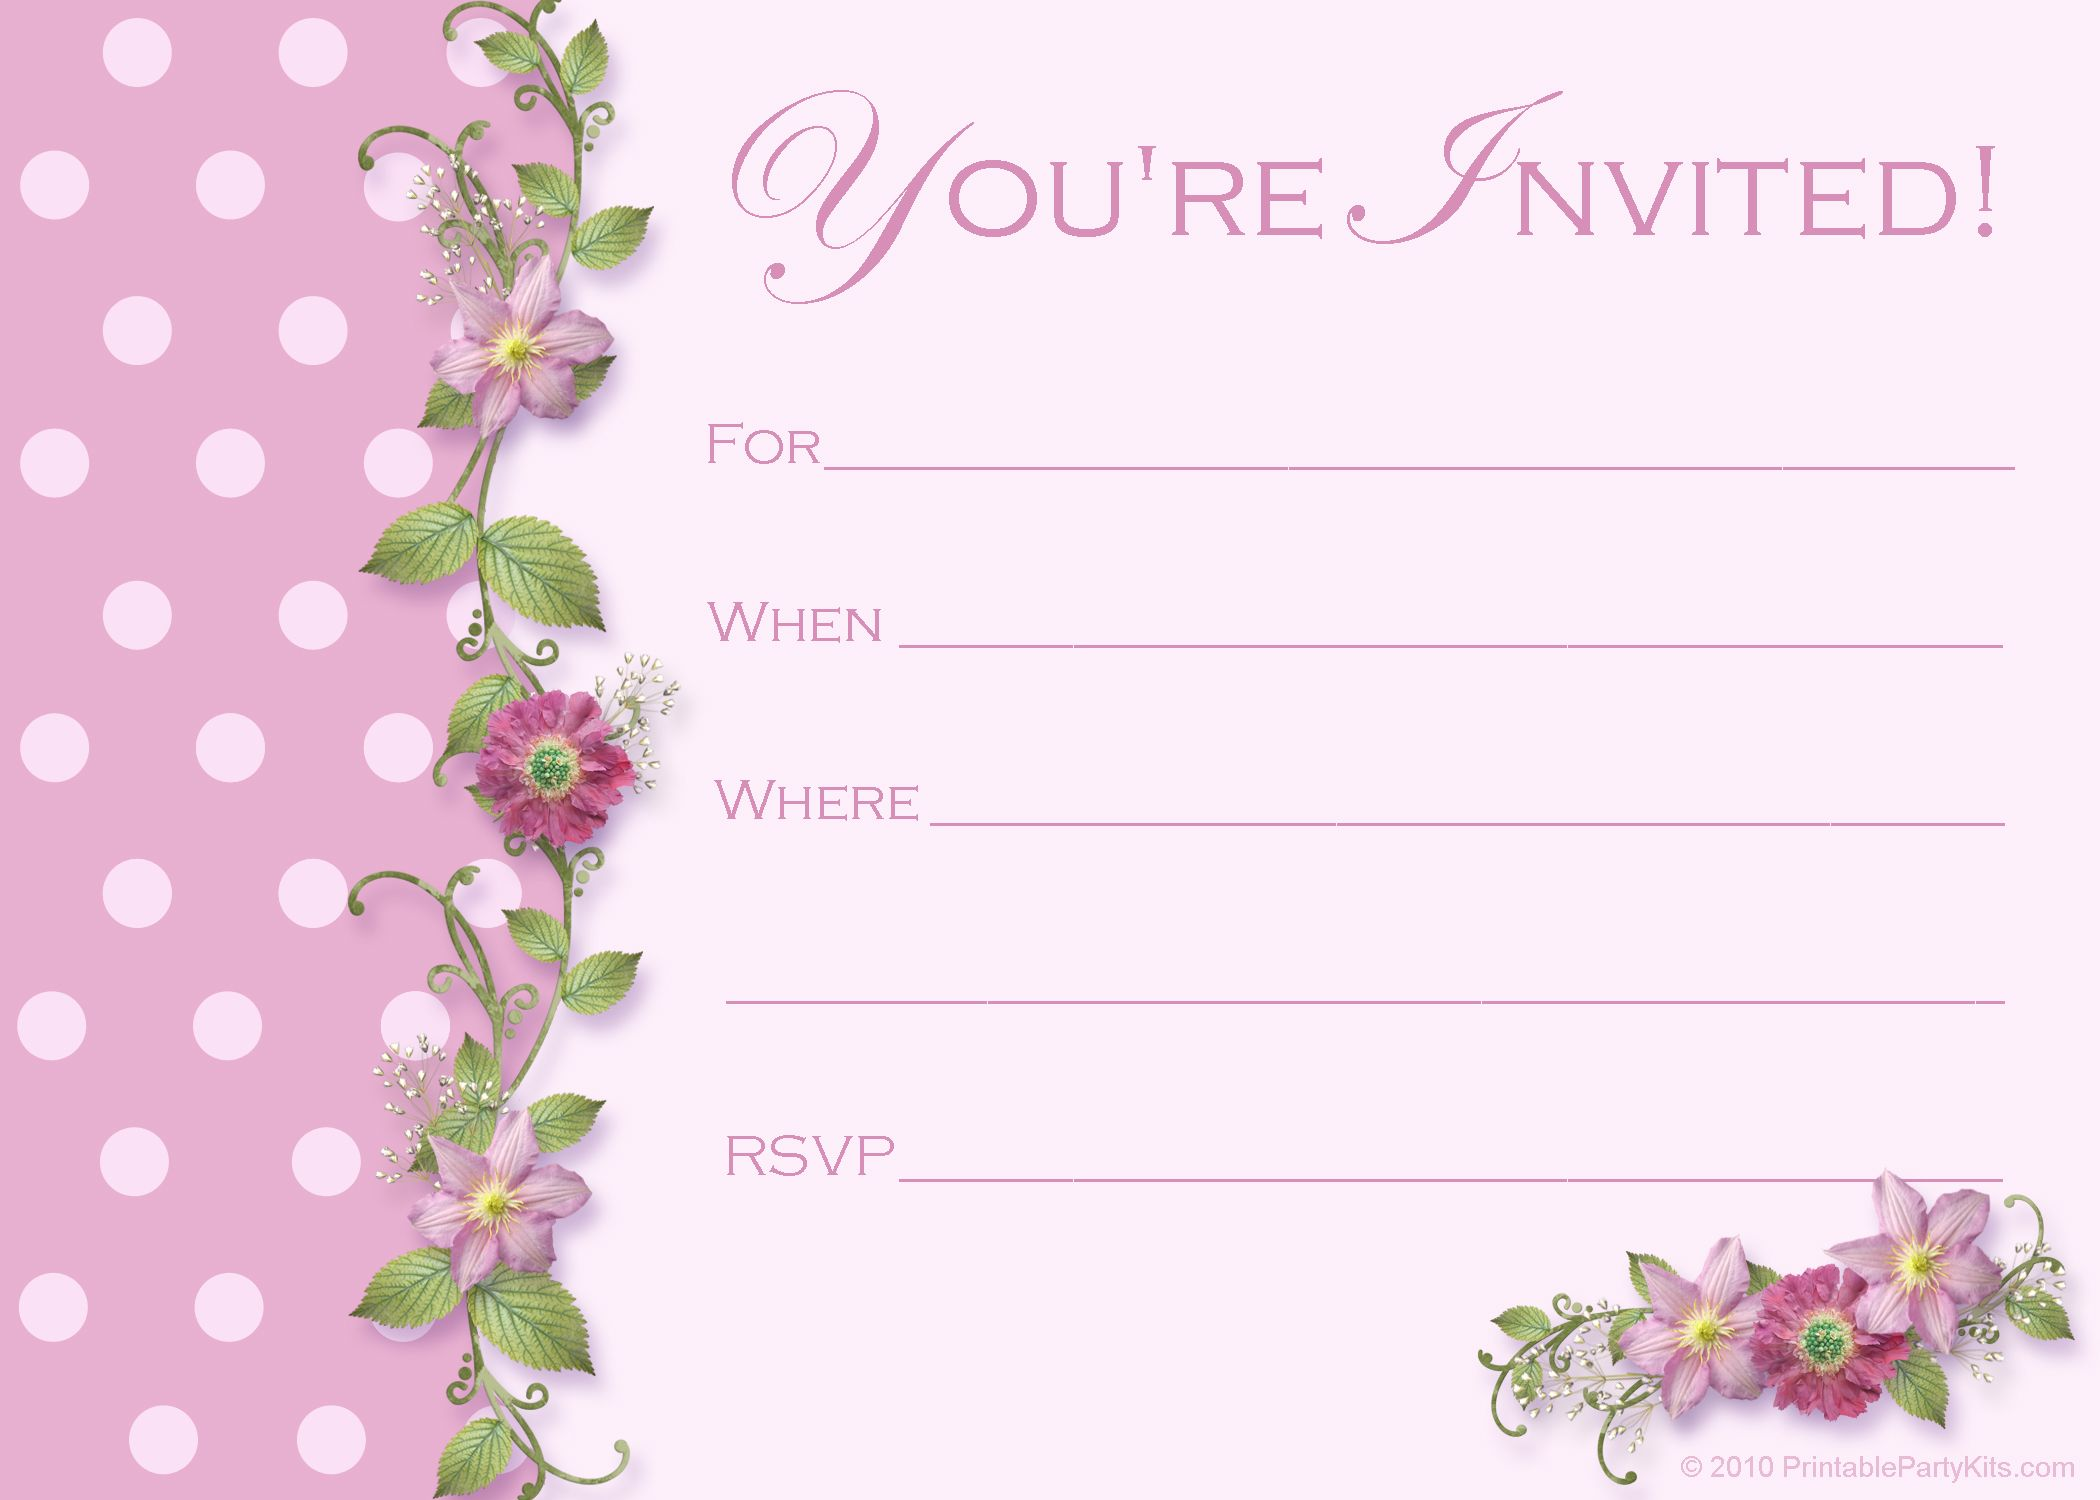 Image For Blank Birthday Invitations Templates Parties Weddings - Blank birthday invitation card templates